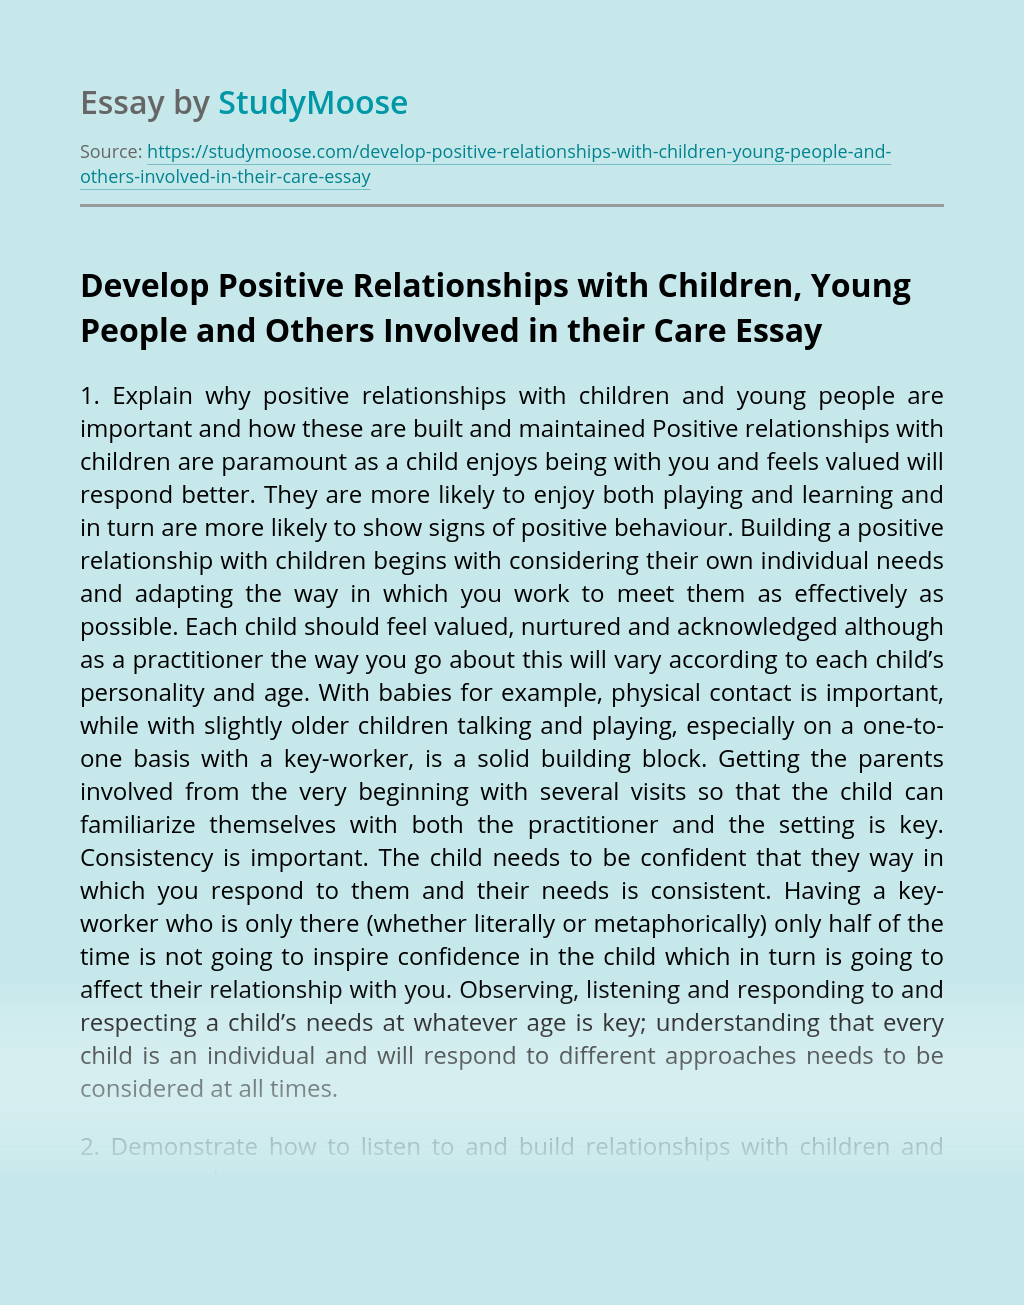 Develop Positive Relationships with Children, Young People and Others Involved in their Care